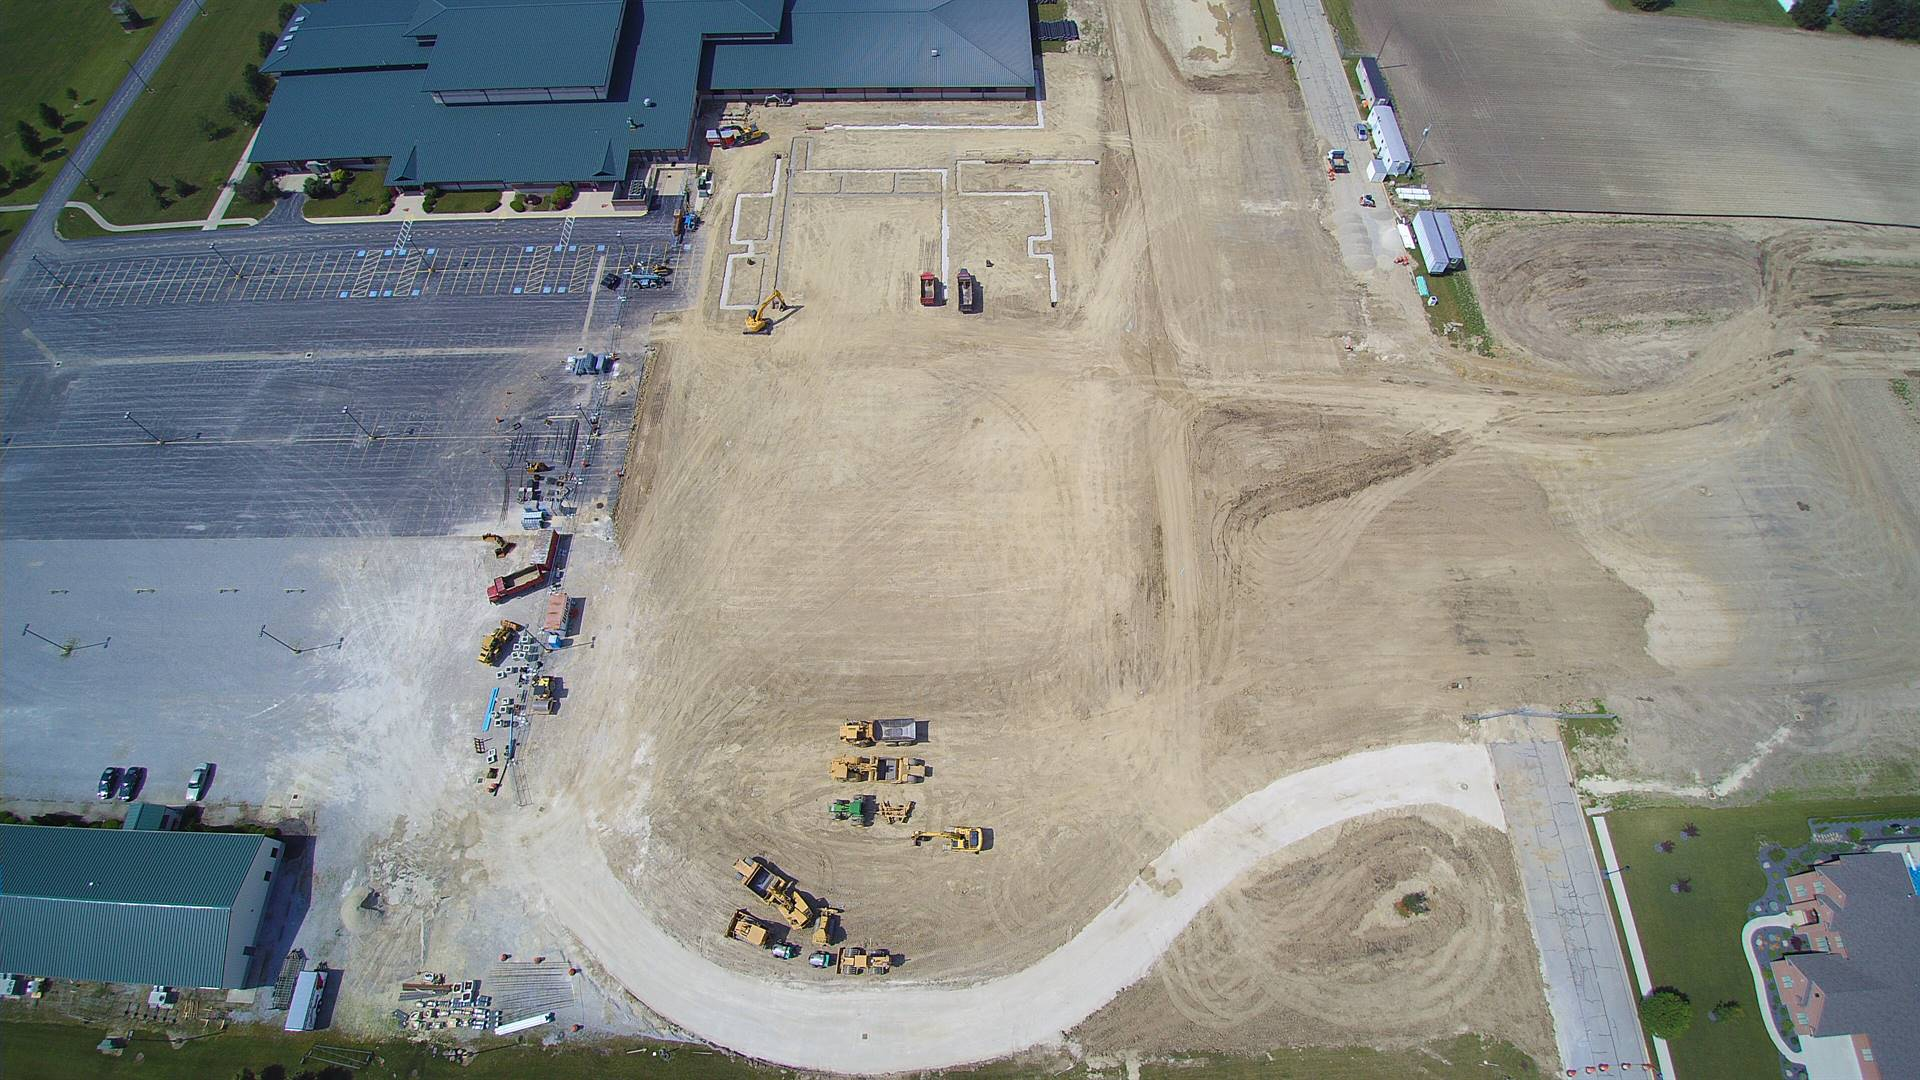 Aerial photo of construction site showing some footers